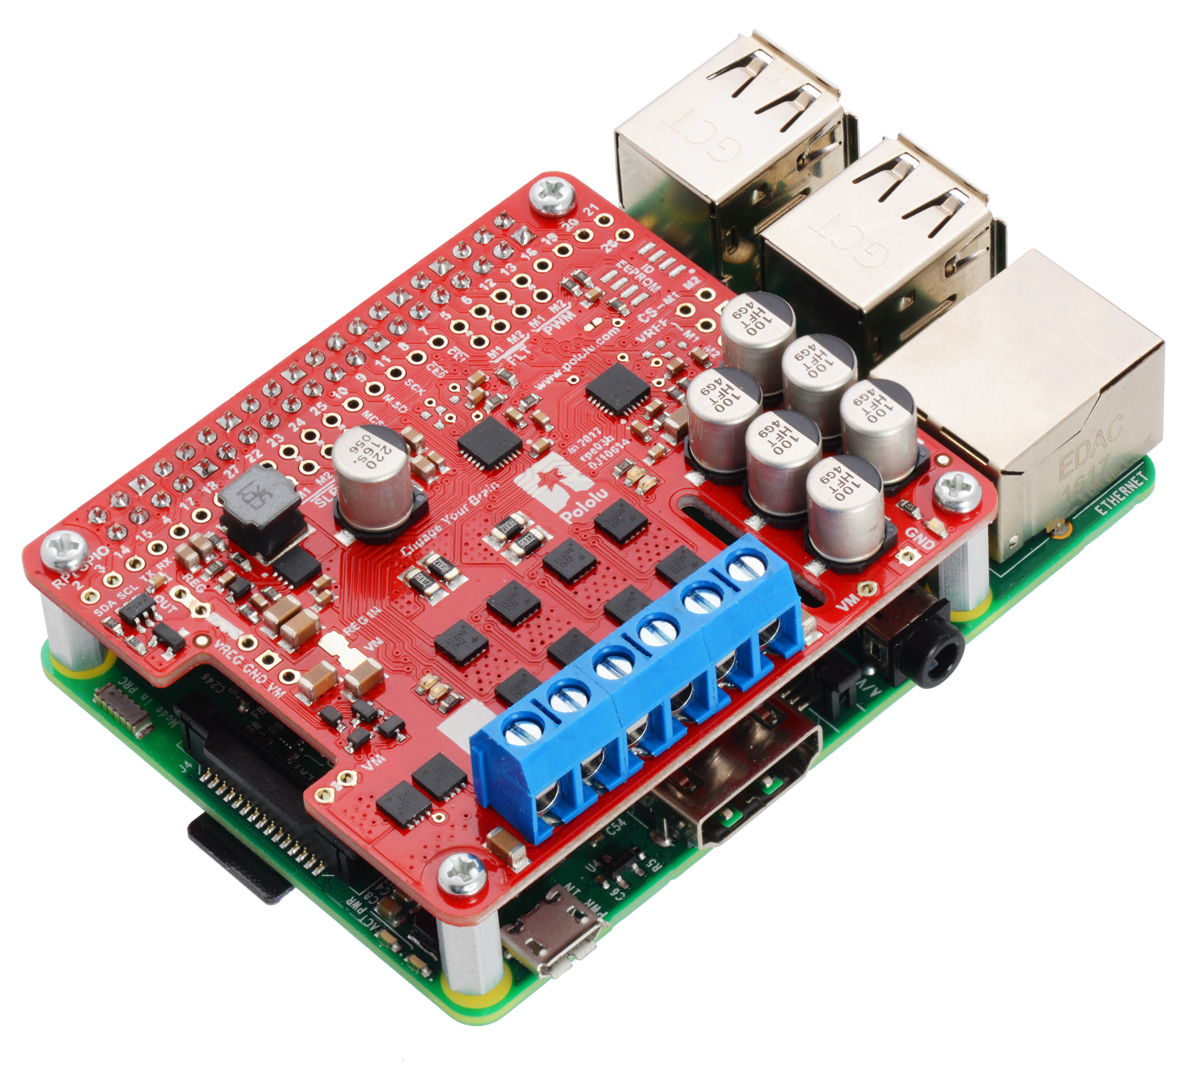 Pololu Dual G2 High-Power Motor Driver 24v14 for Raspberry Pi